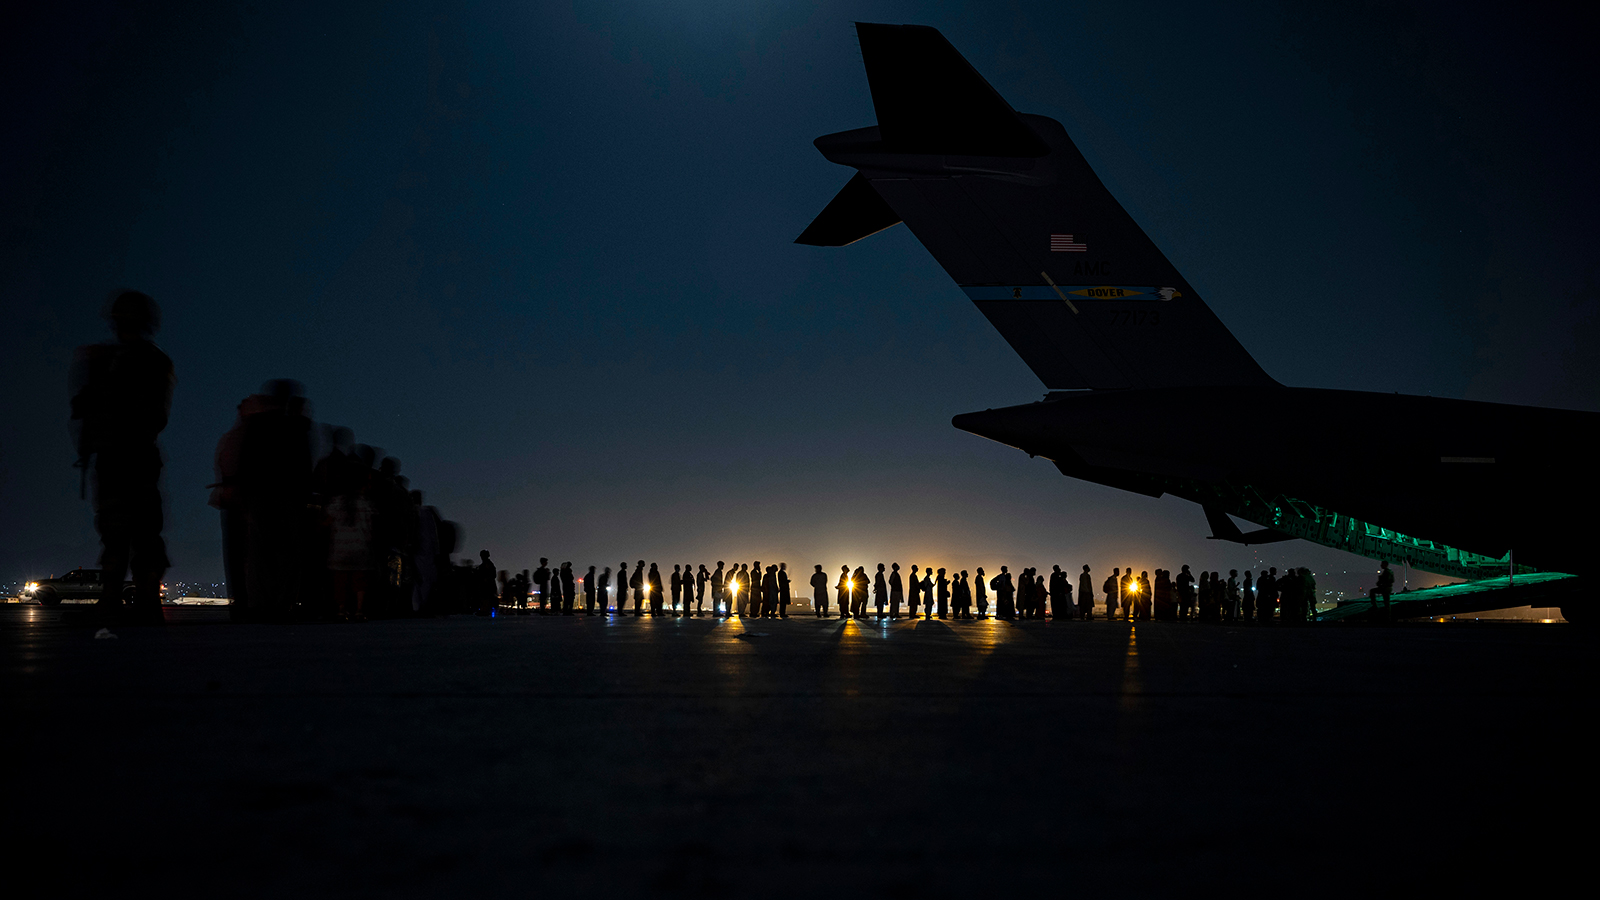 In this image provided by the U.S. Air Force, U.S. Air Force aircrew, assigned to the 816th Expeditionary Airlift Squadron, prepare to load qualified evacuees aboard a U.S. Air Force C-17 Globemaster III aircraft in support of the Afghanistan evacuation at Hamid Karzai International Airport in Afghanistan on August 21.